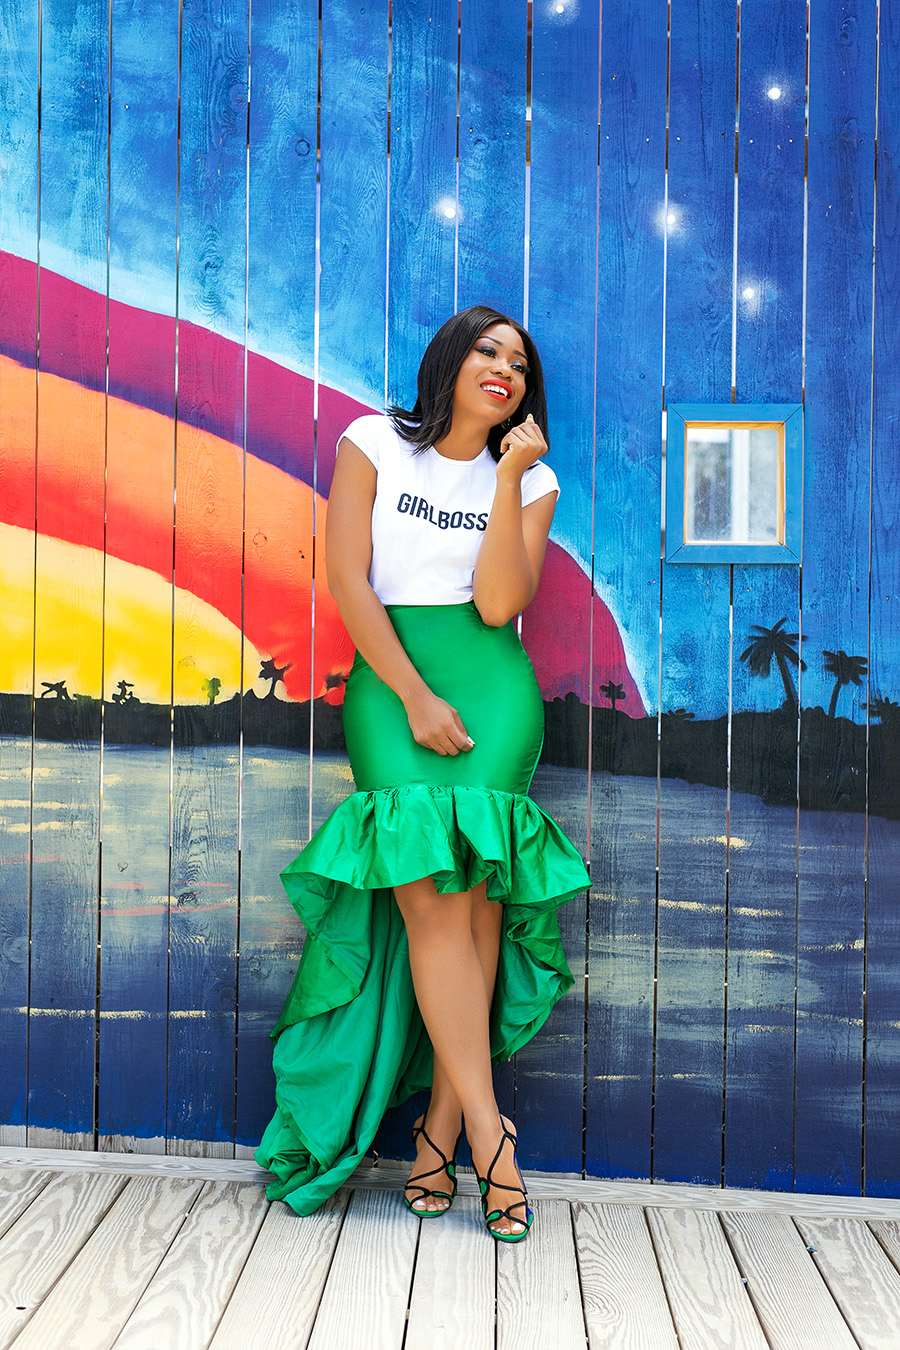 Statement green skirt and graphic tee with a rainbow backdrop